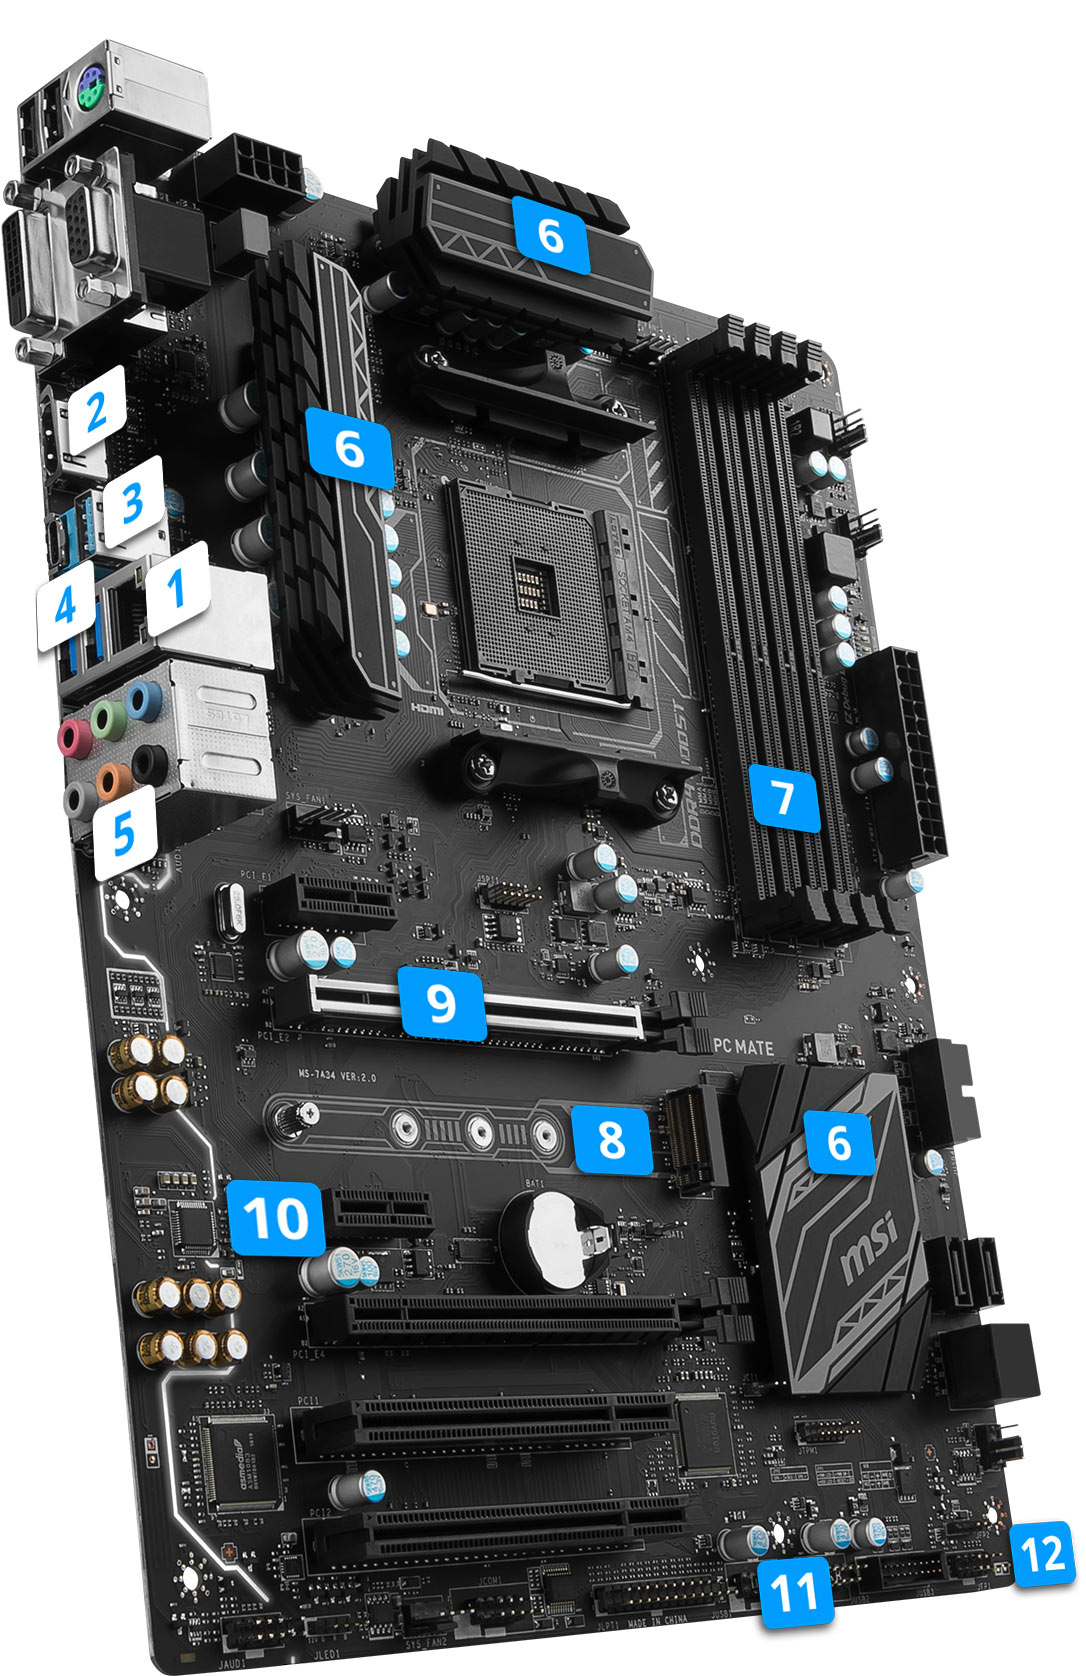 MSI B350 PC MATE overview